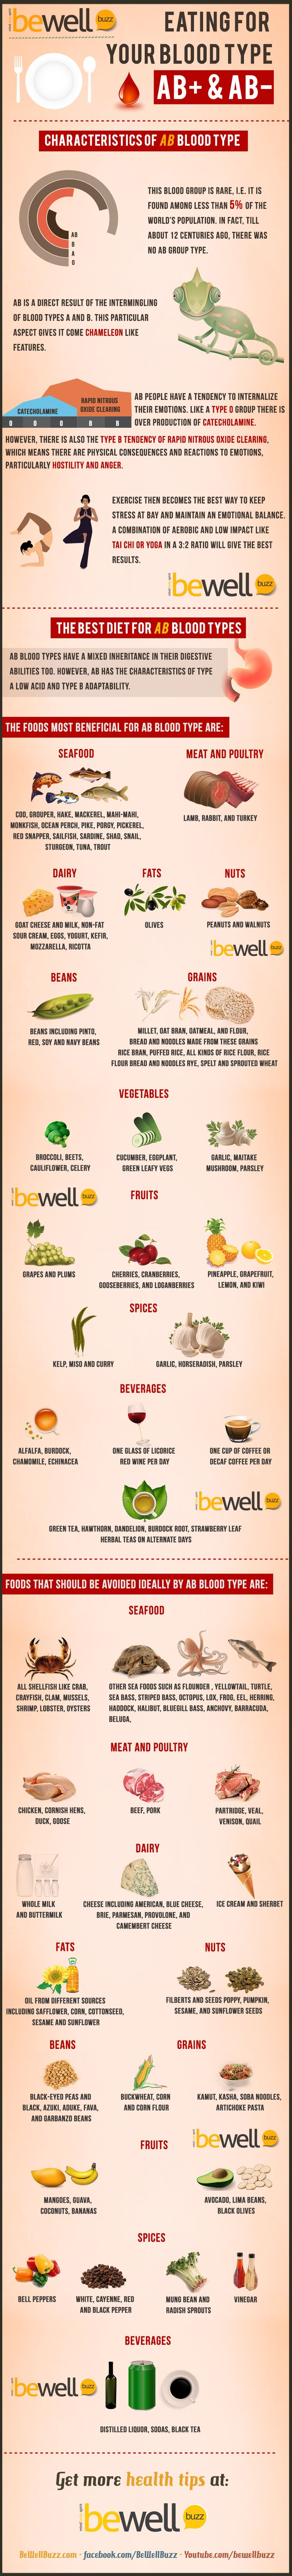 Eating right for your blood type ~ AB Blood Grouping Infographic More